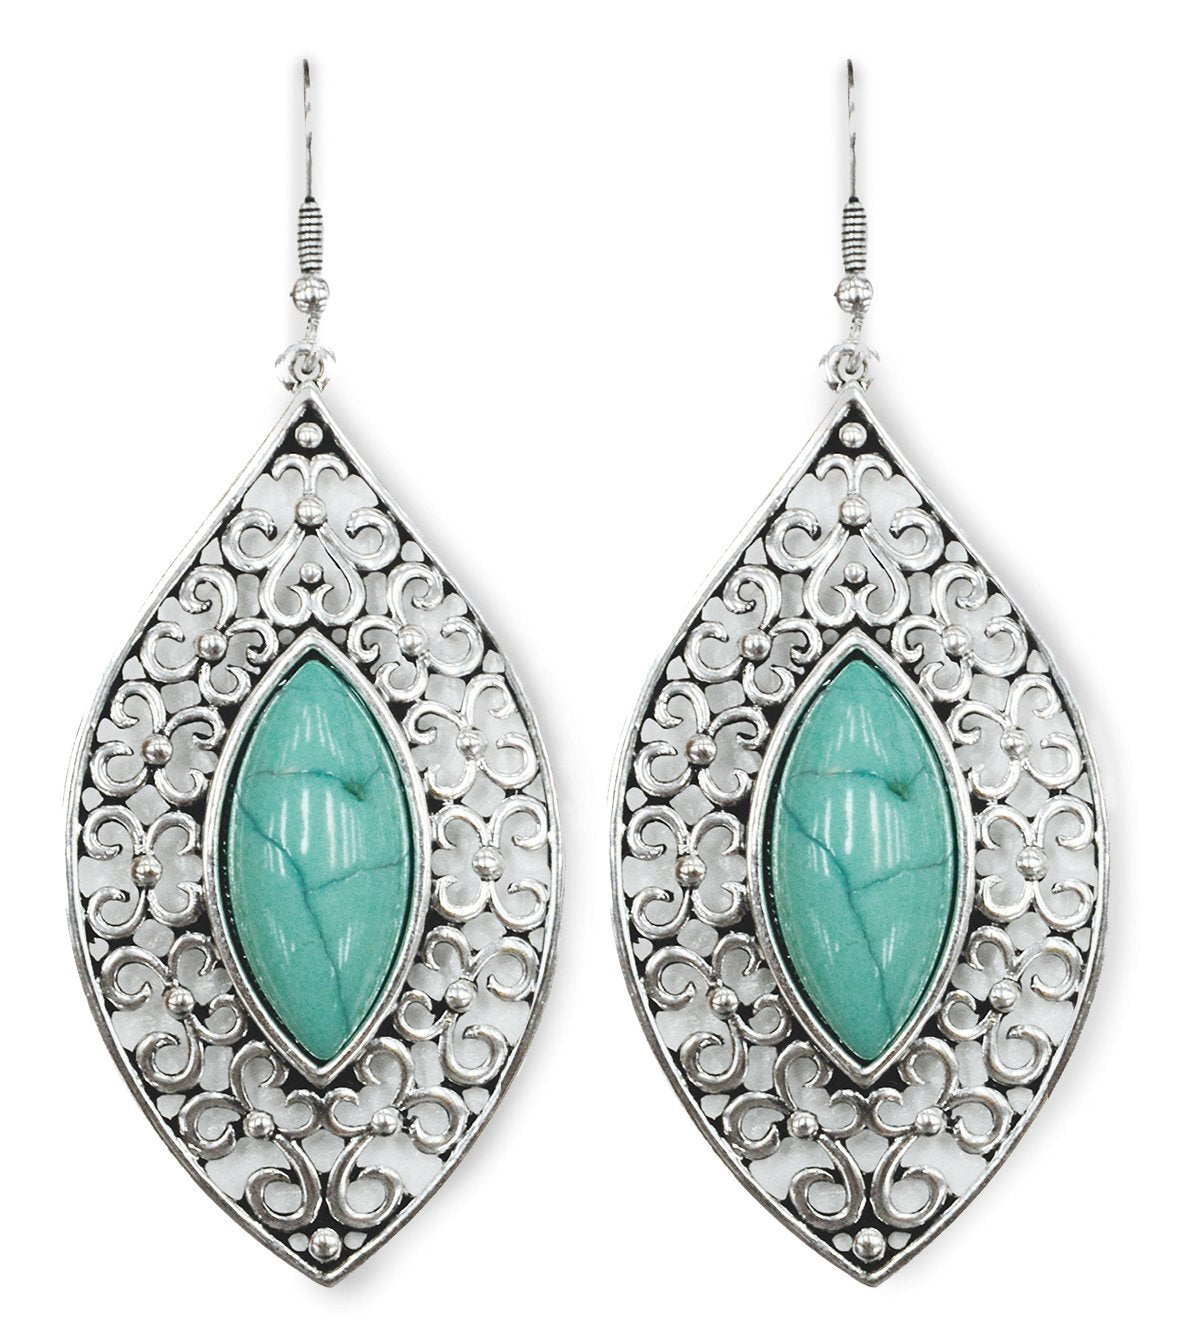 Pure Western Jewellery Celeste Earrings